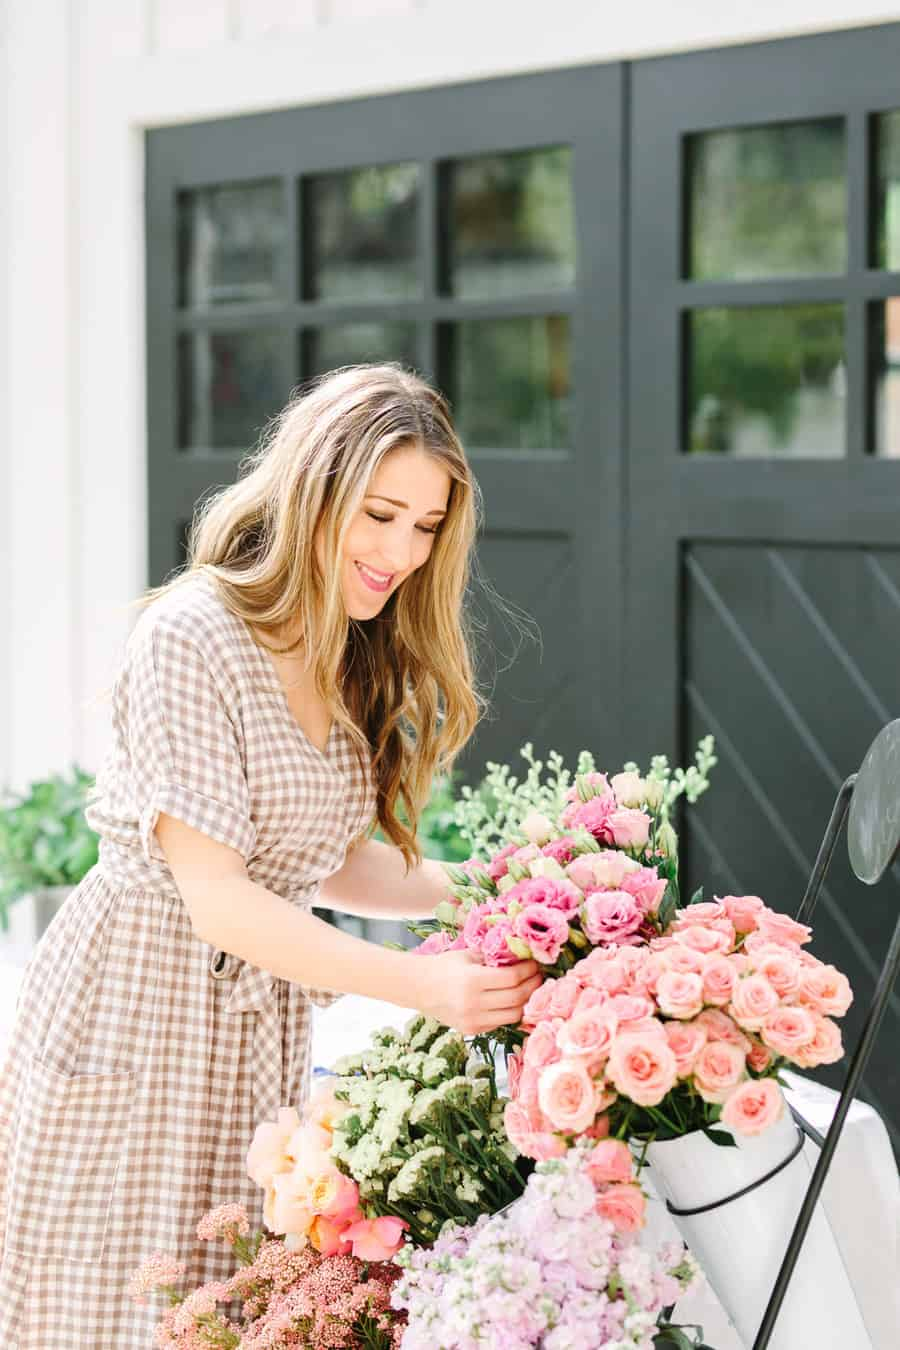 Eden Passante making a floral arrangement outside.